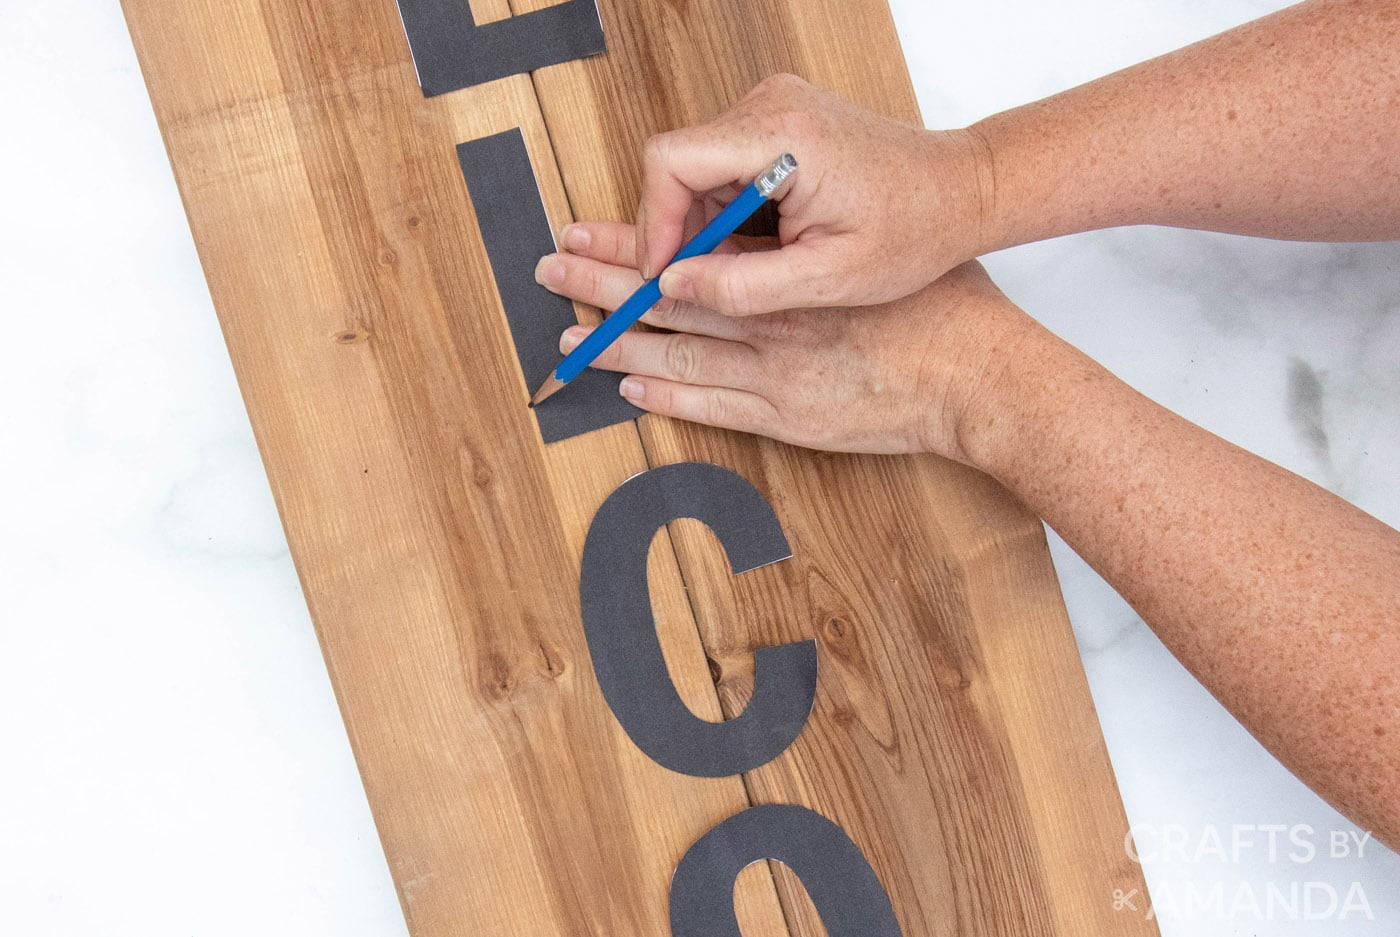 hand tracing letters onto wooden board